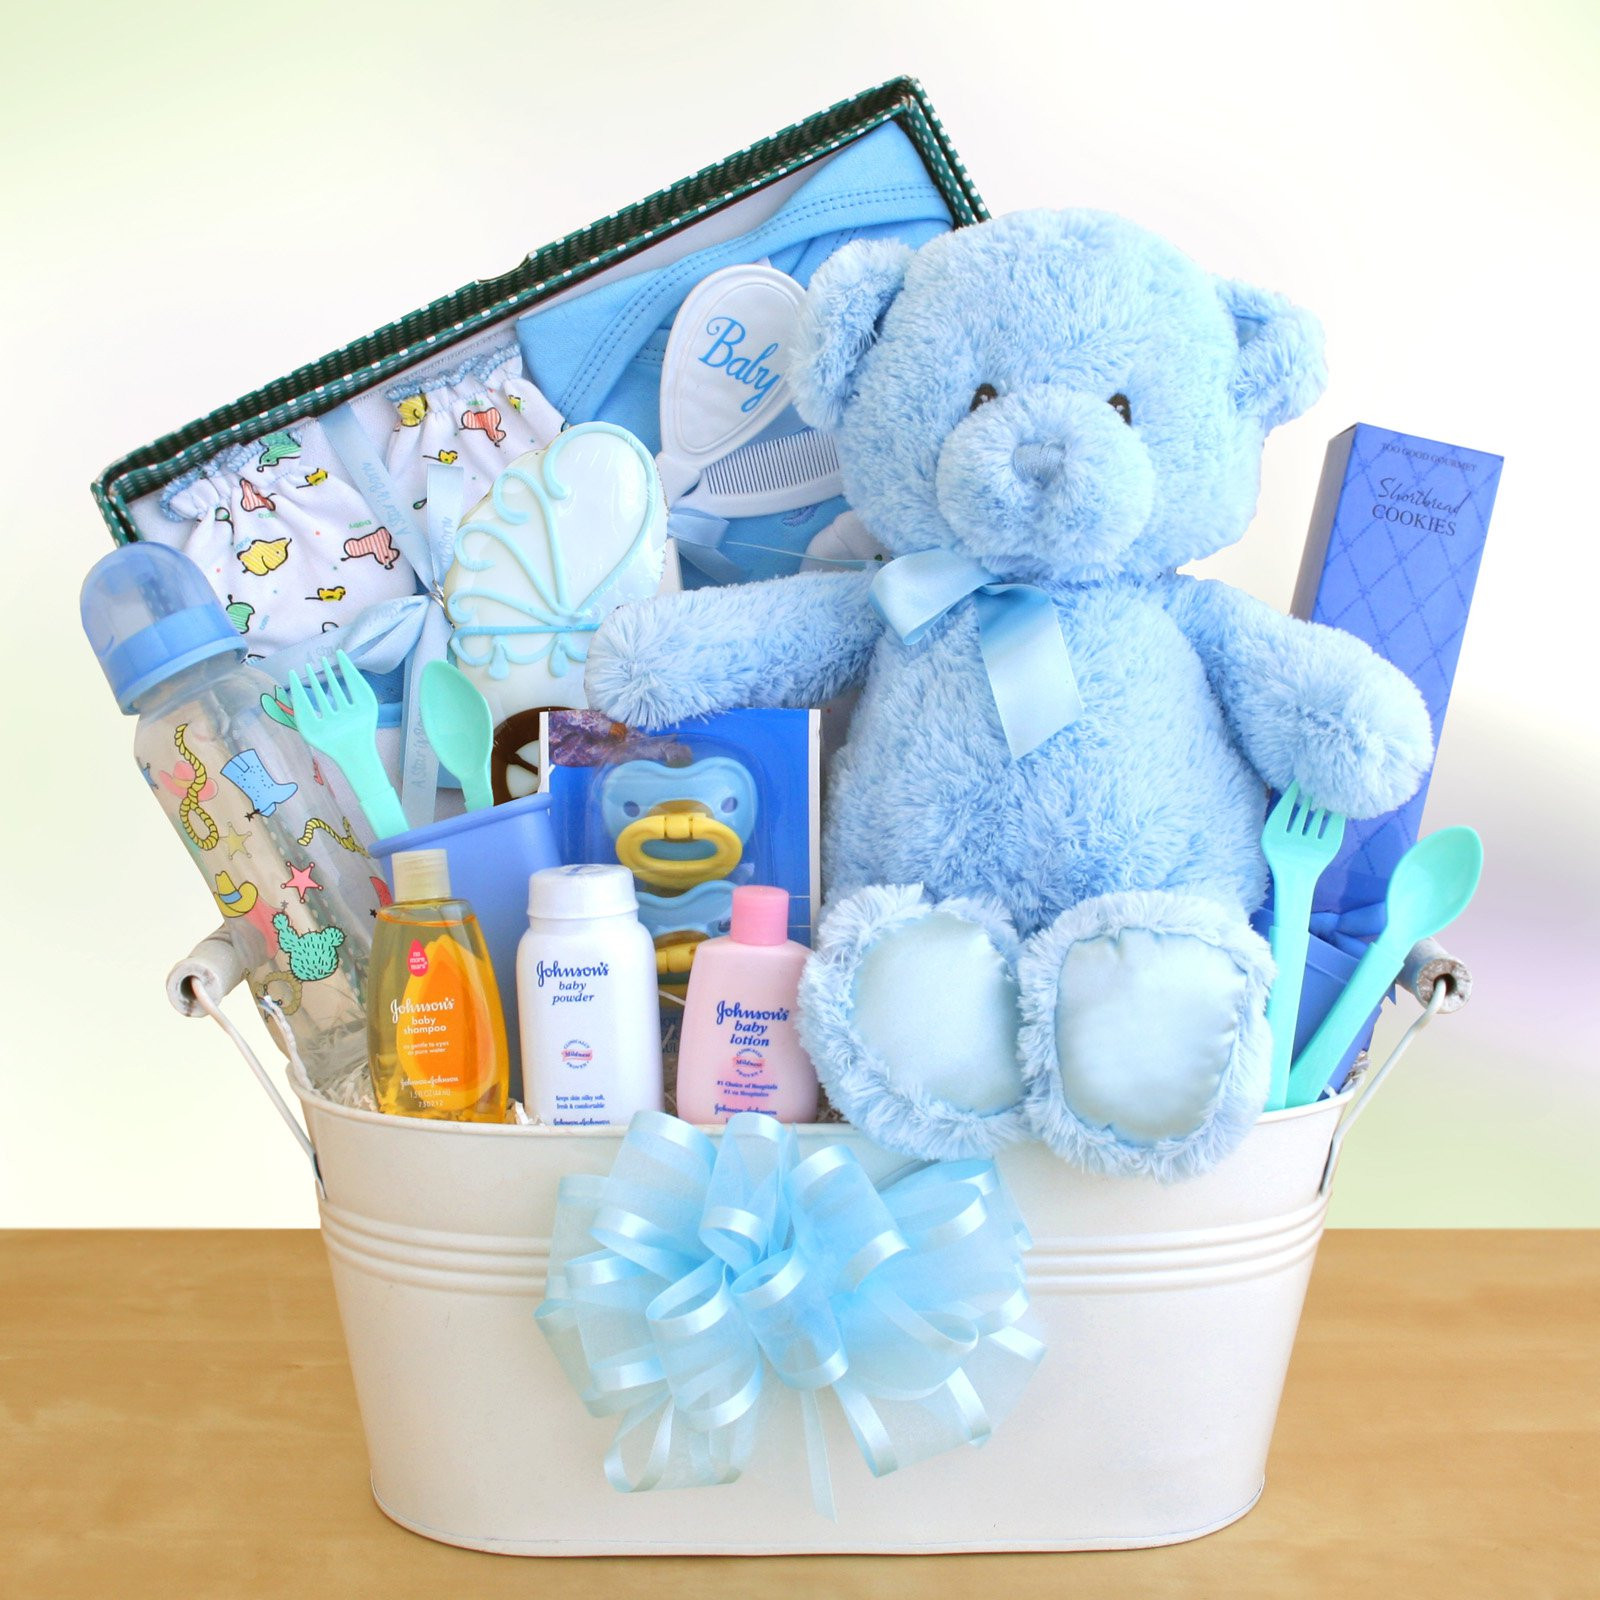 Best ideas about Newborn Baby Gift Ideas . Save or Pin New Arrival Baby Boy Gift Basket Gift Baskets by Now.